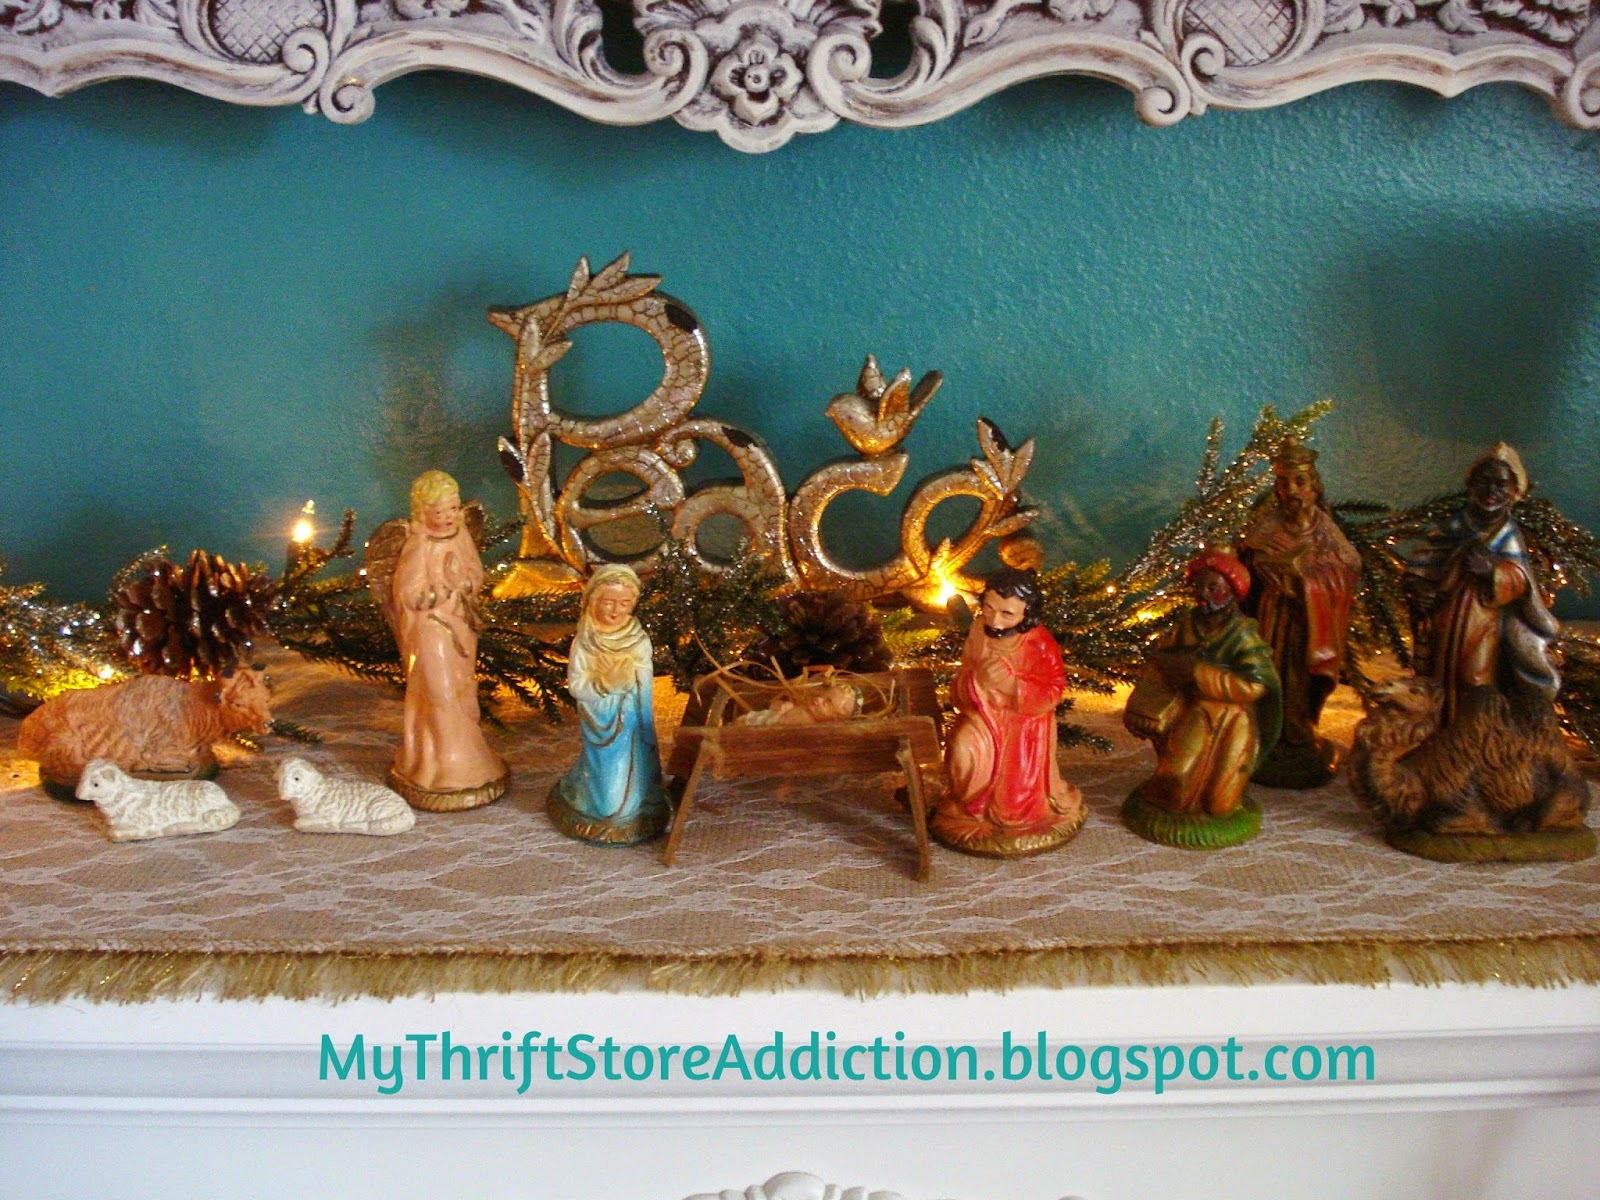 Vintage family heirloom nativity